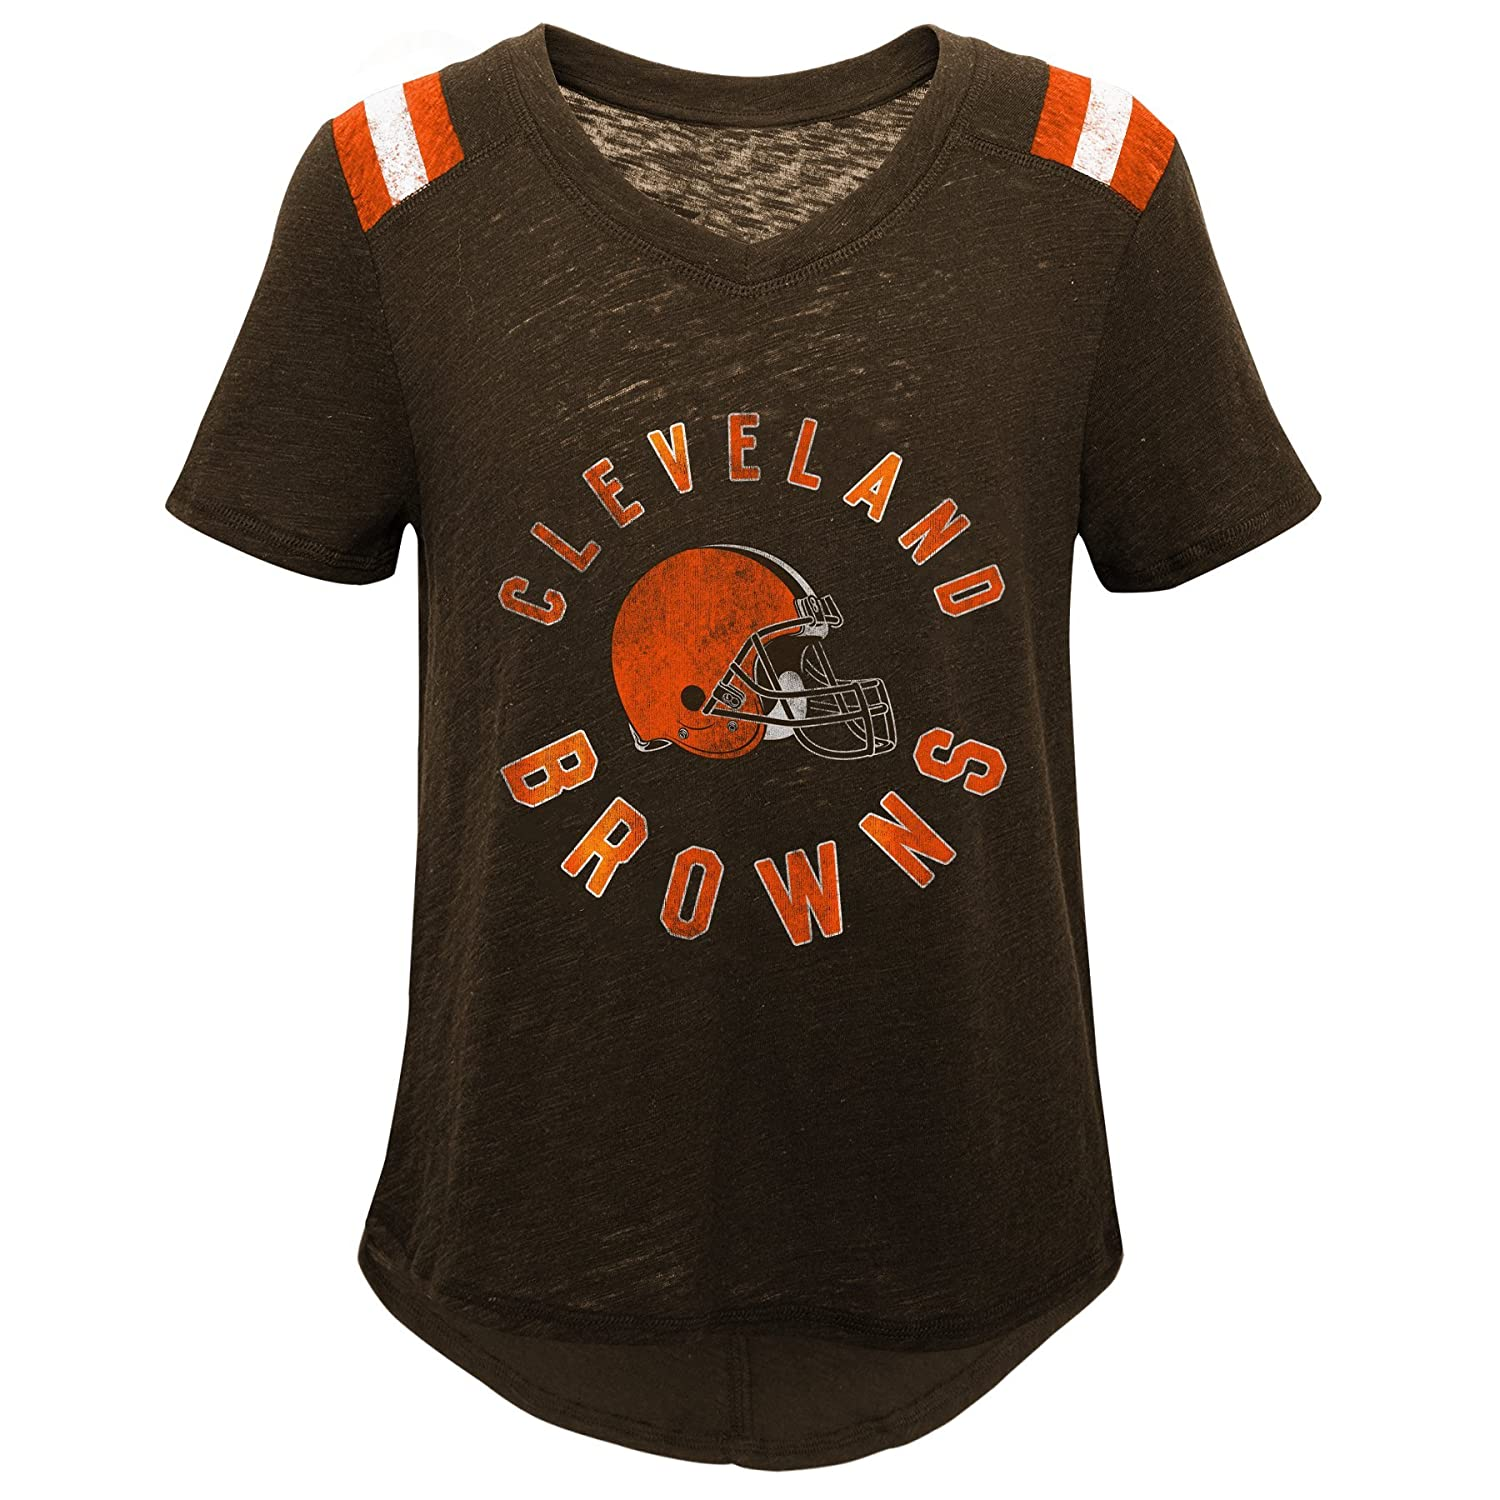 14 Youth Large Outerstuff NFL NFL Cleveland Browns Youth Girls Retro Block Vintage Short Sleeve Football Tee Brown Suede